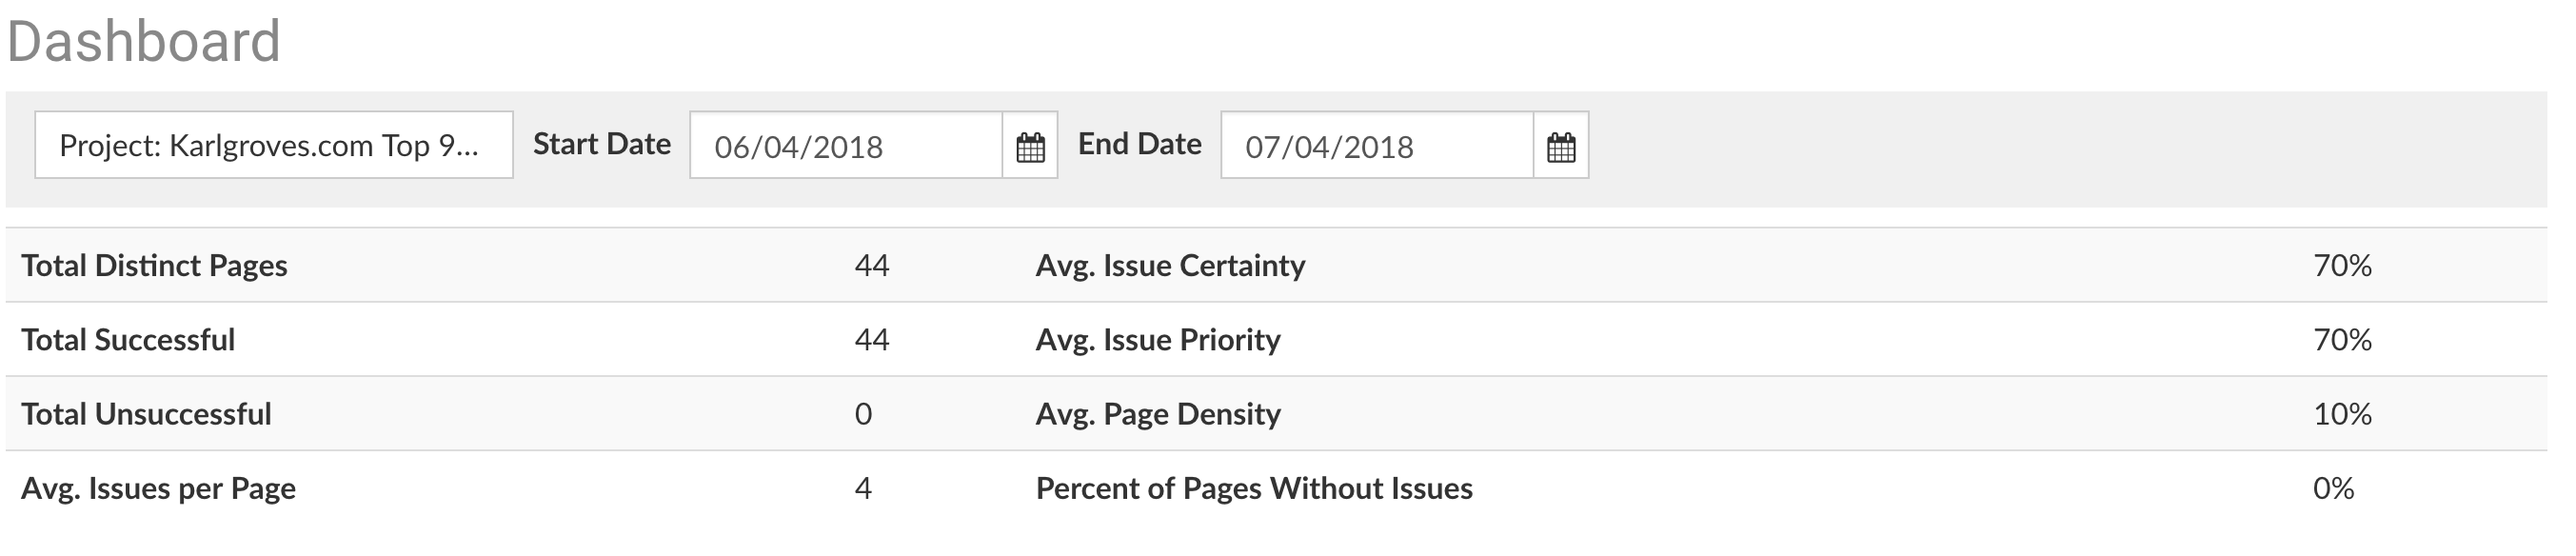 Screenshot showing the summary table in the Tenon dashboard